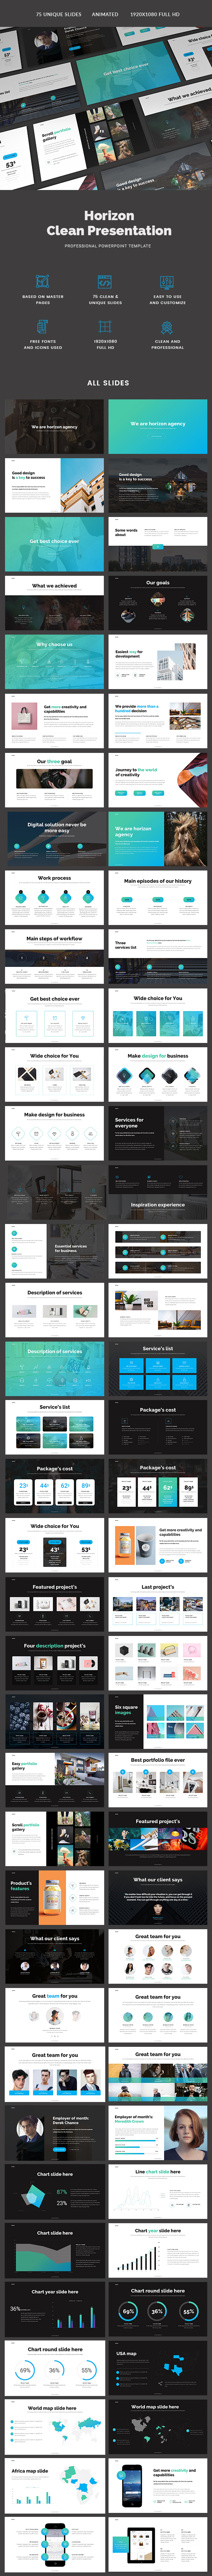 GraphicRiver Bundle PowerPoint 3 in 1 20544006